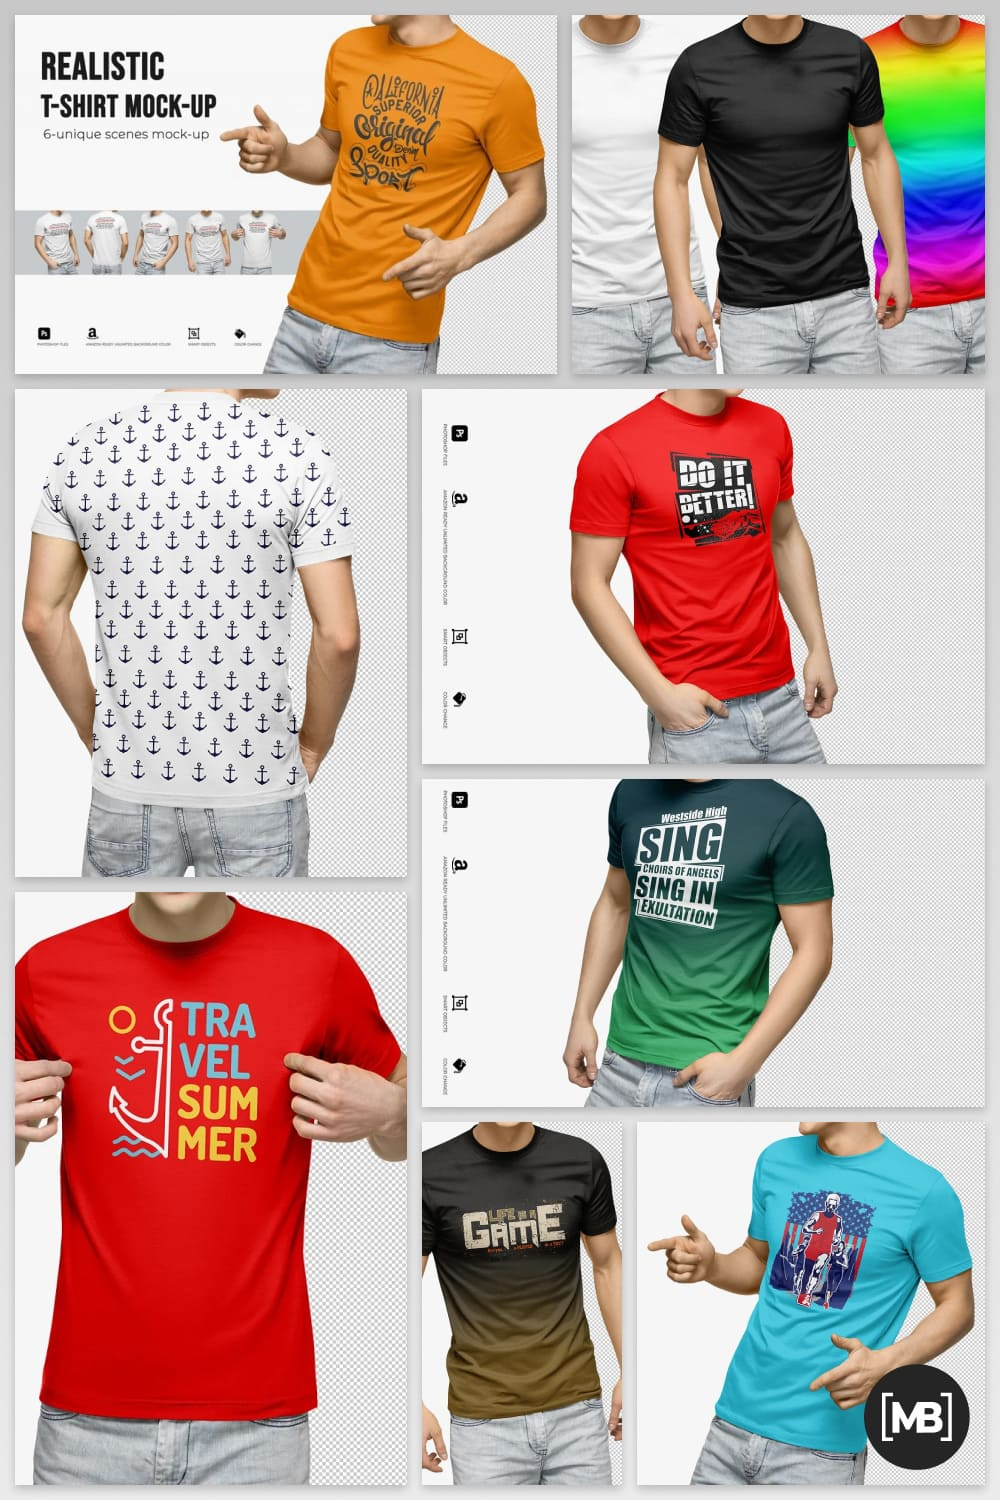 Stylish T-shirts with a gradient and modern lettering.